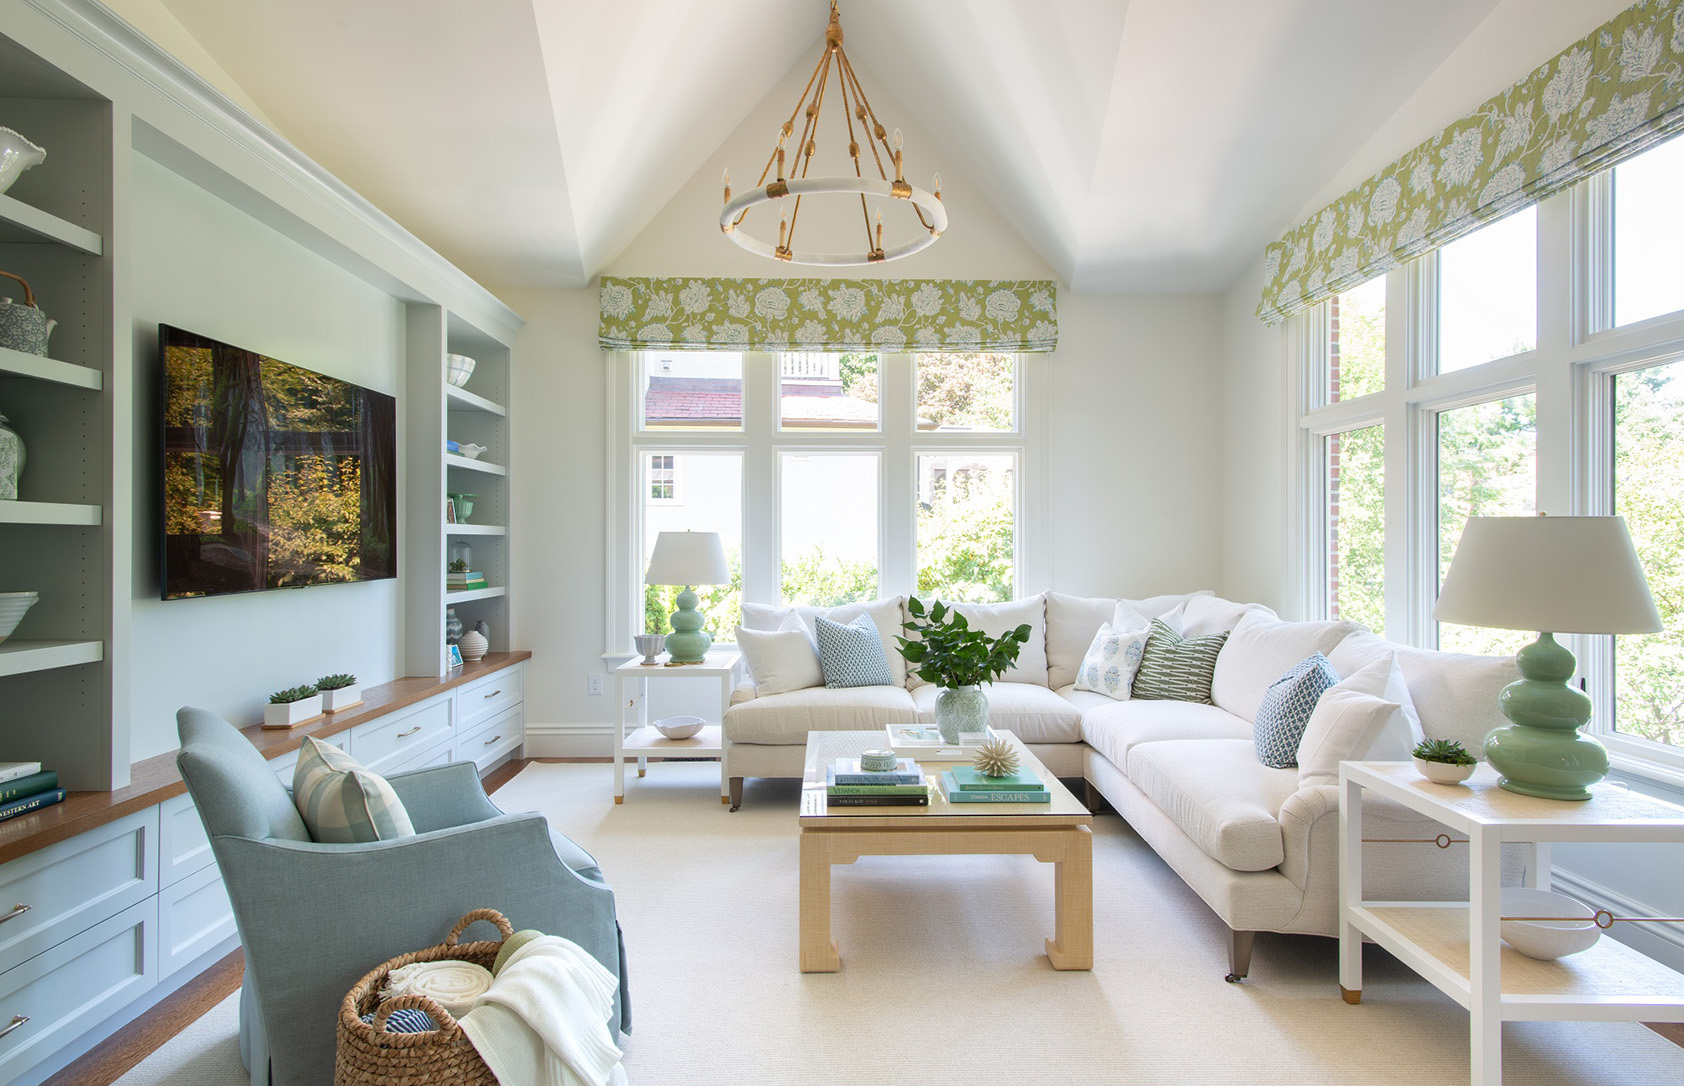 Transitional interior design family room